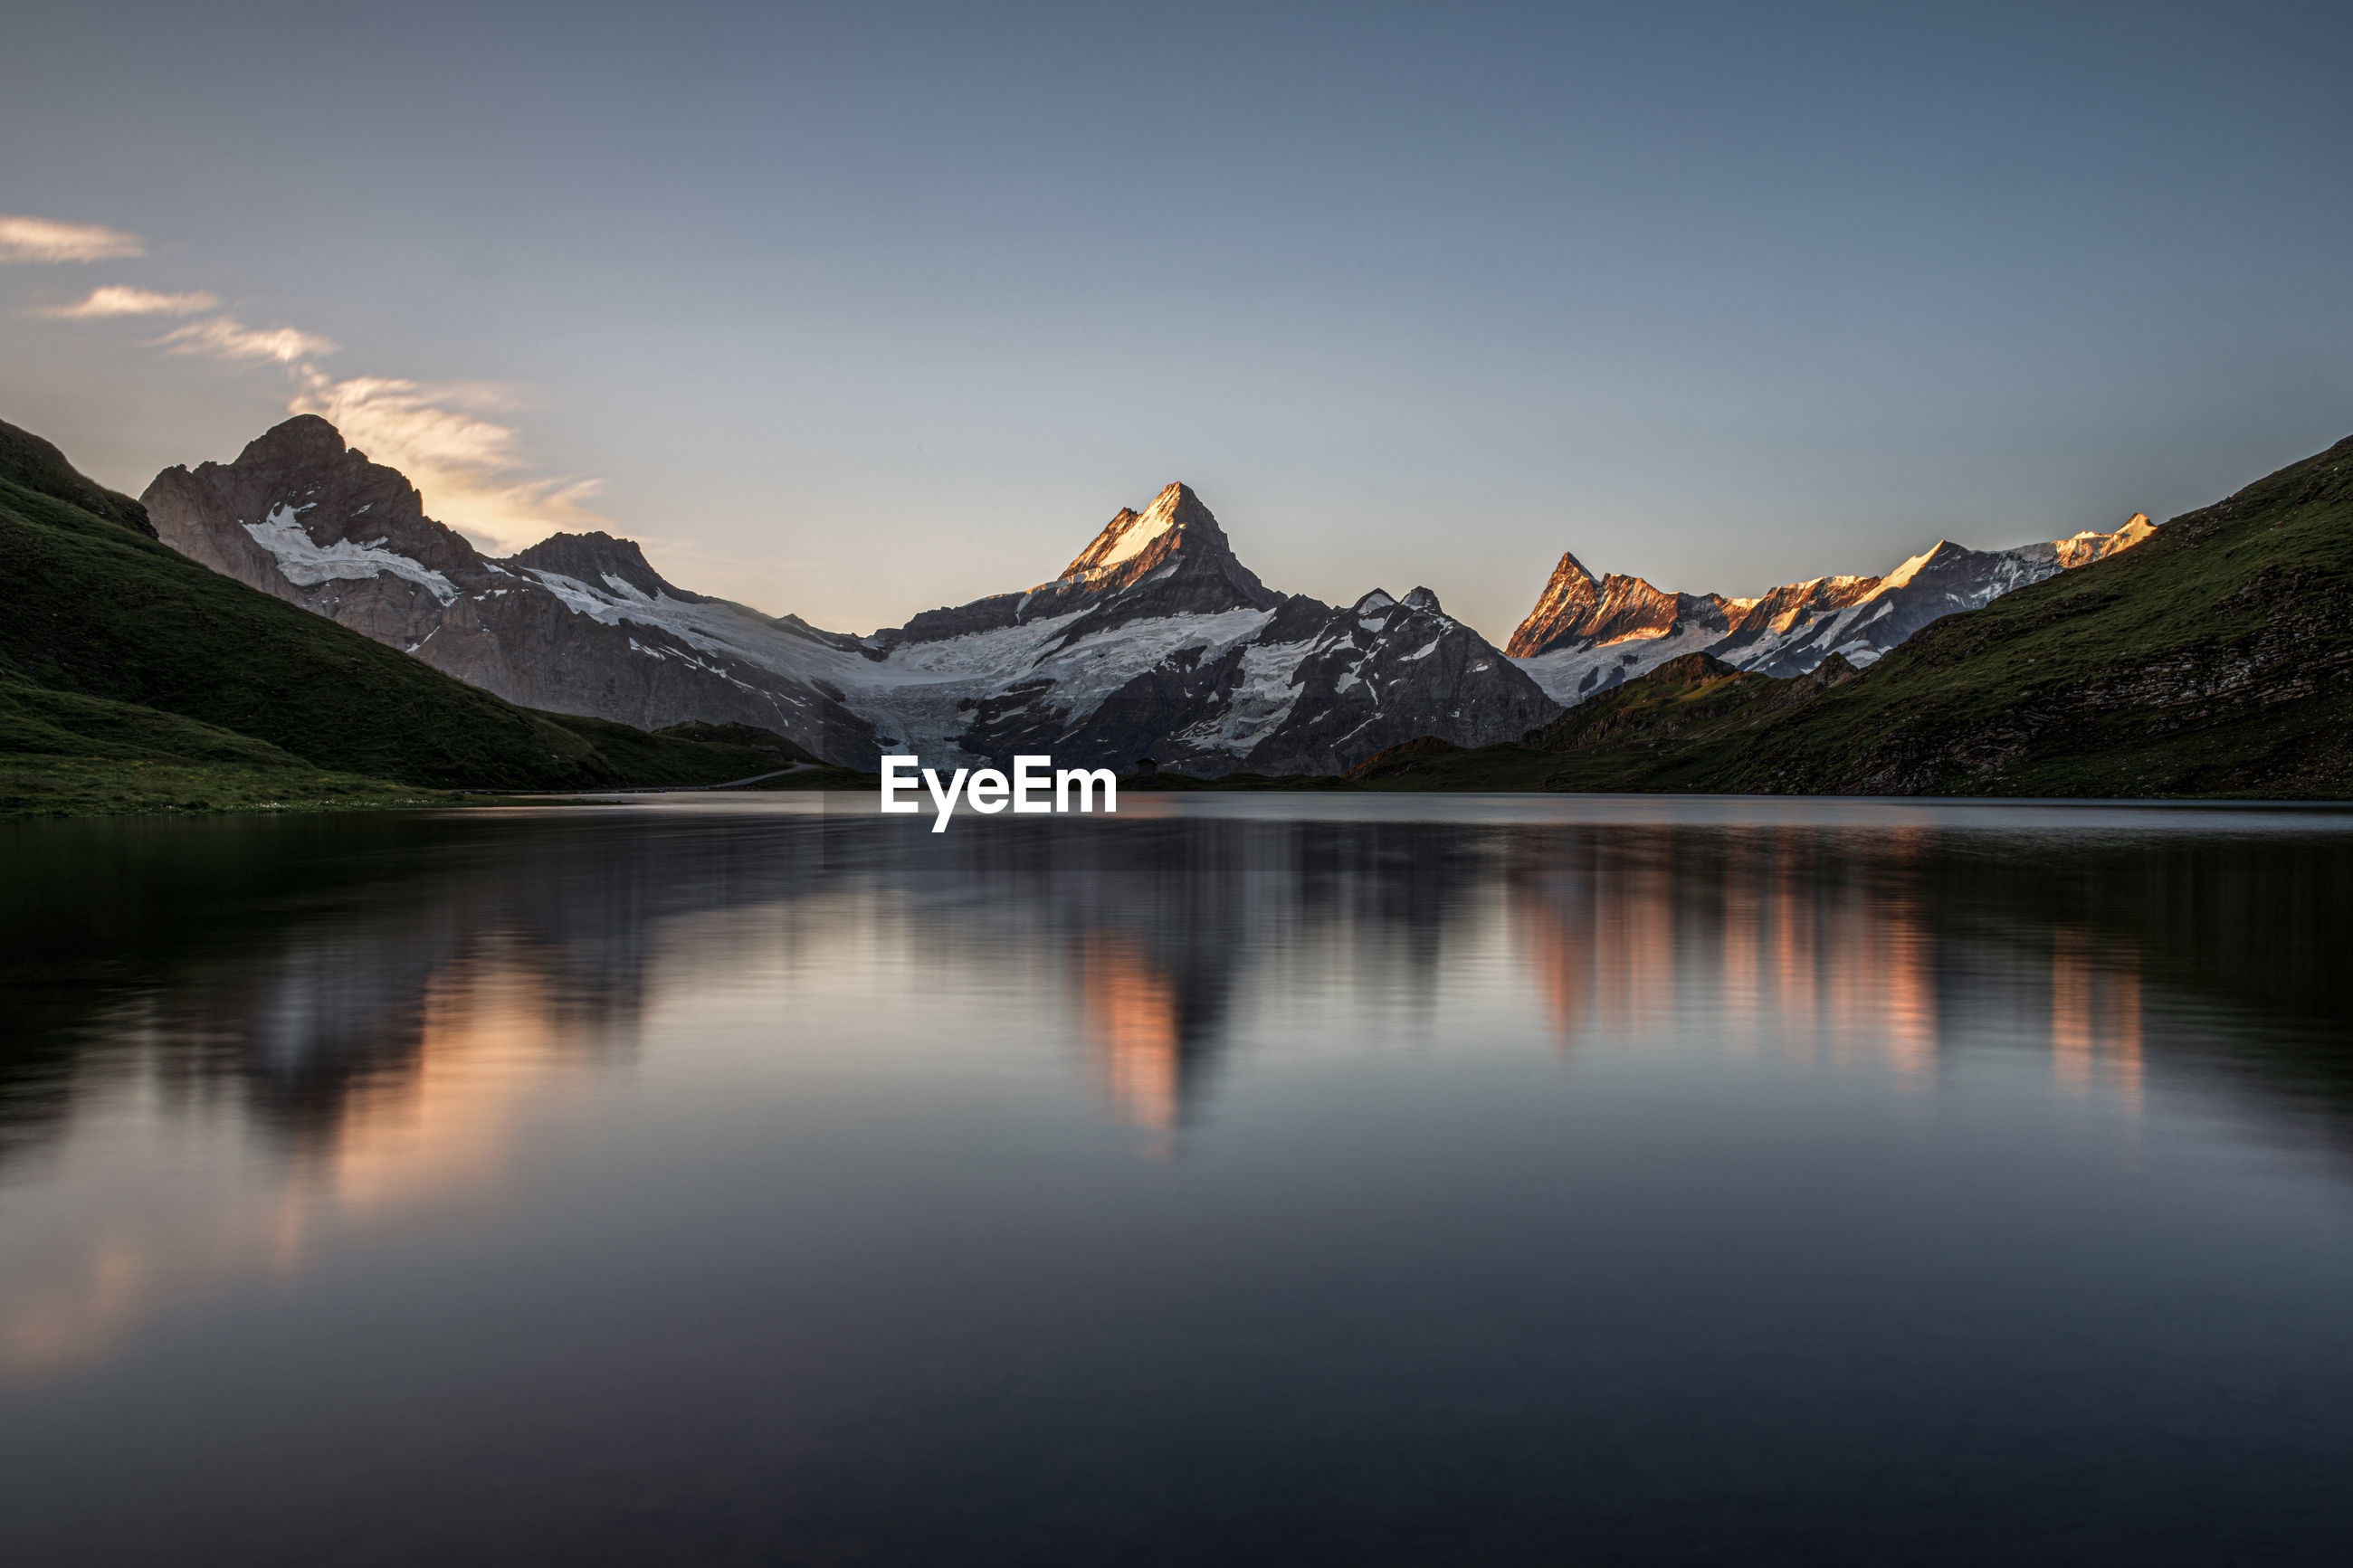 Scenic view of lake bachalpsee and the mountain schreckhorn against sky during dawn